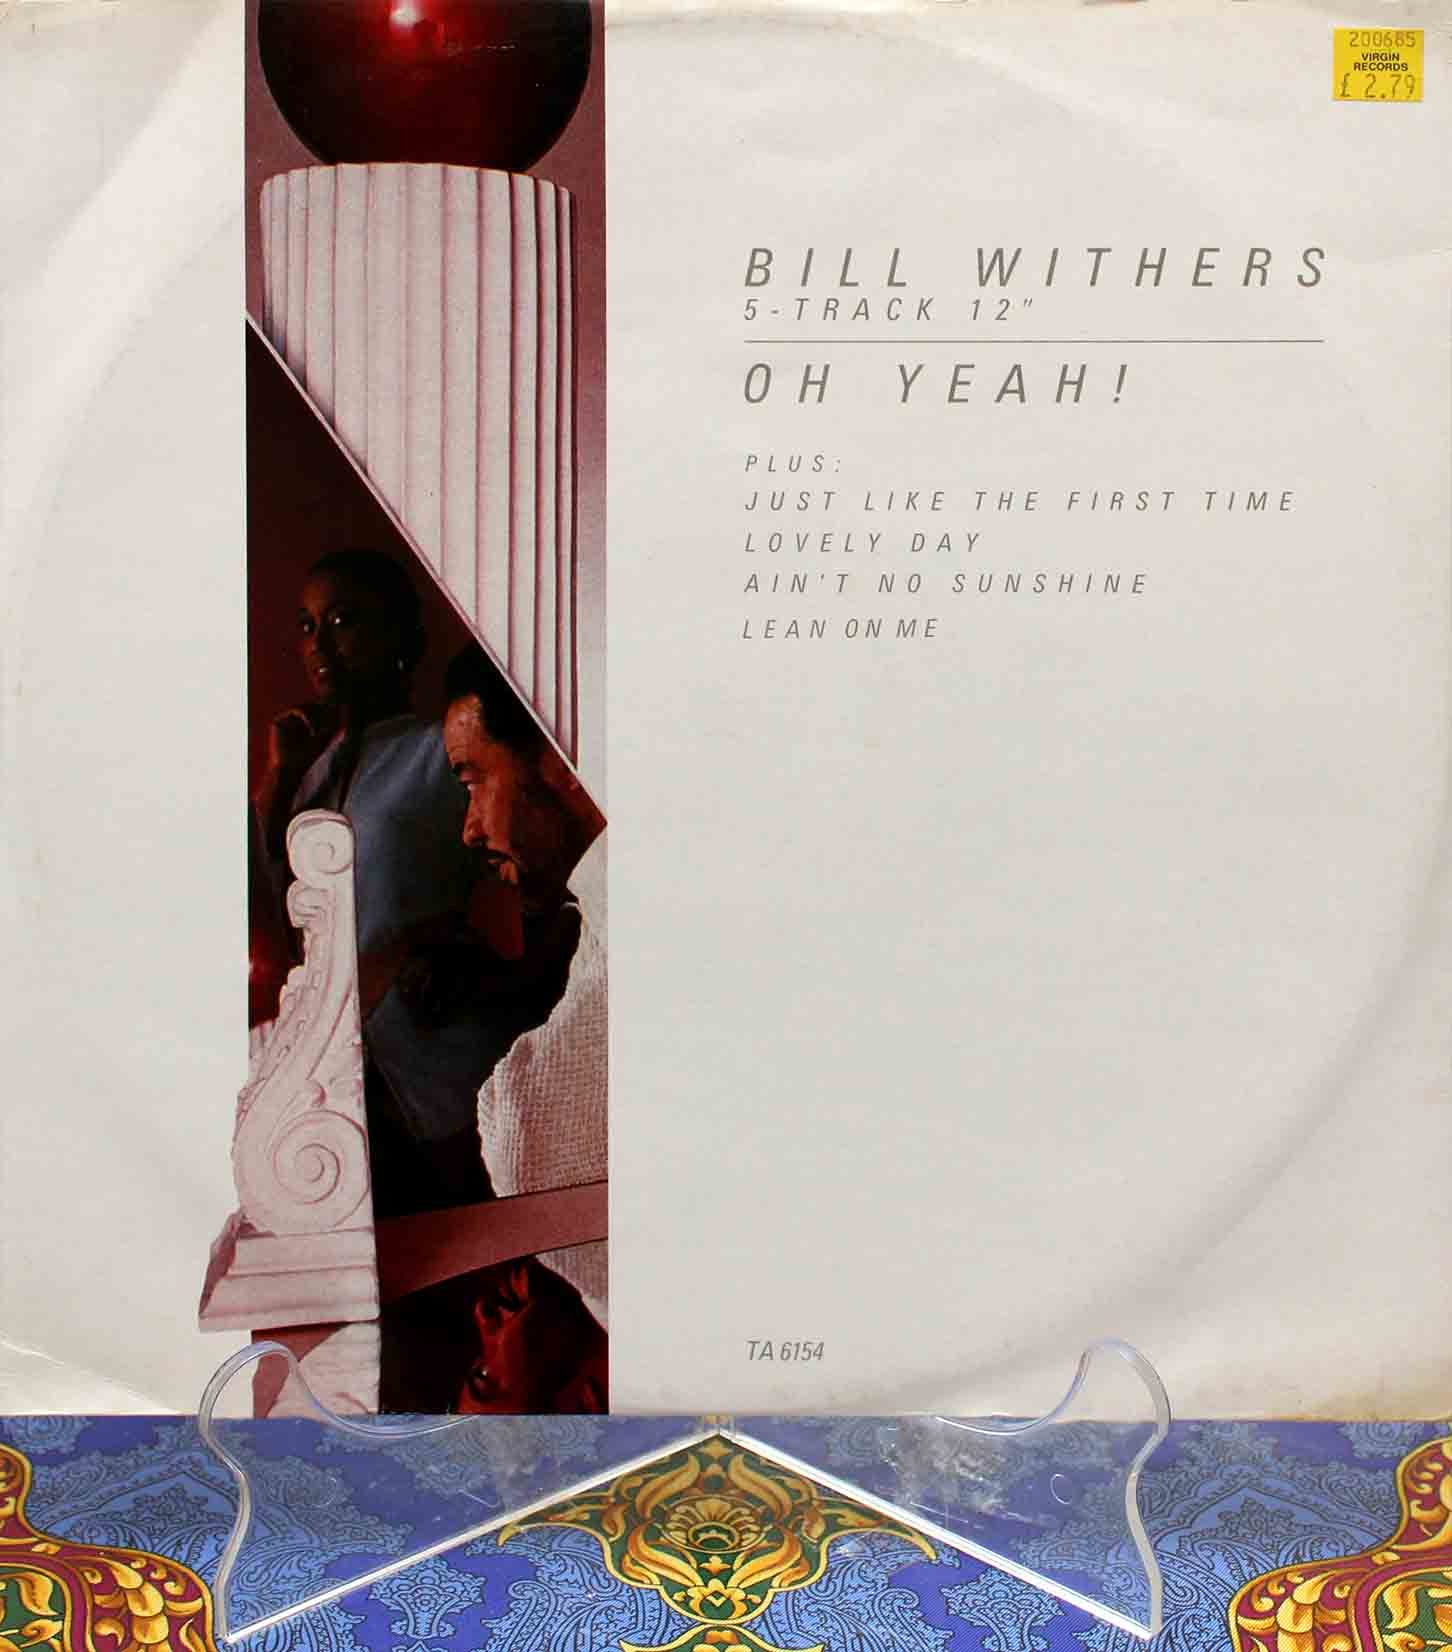 Bill Withers – Oh Yeah! 01